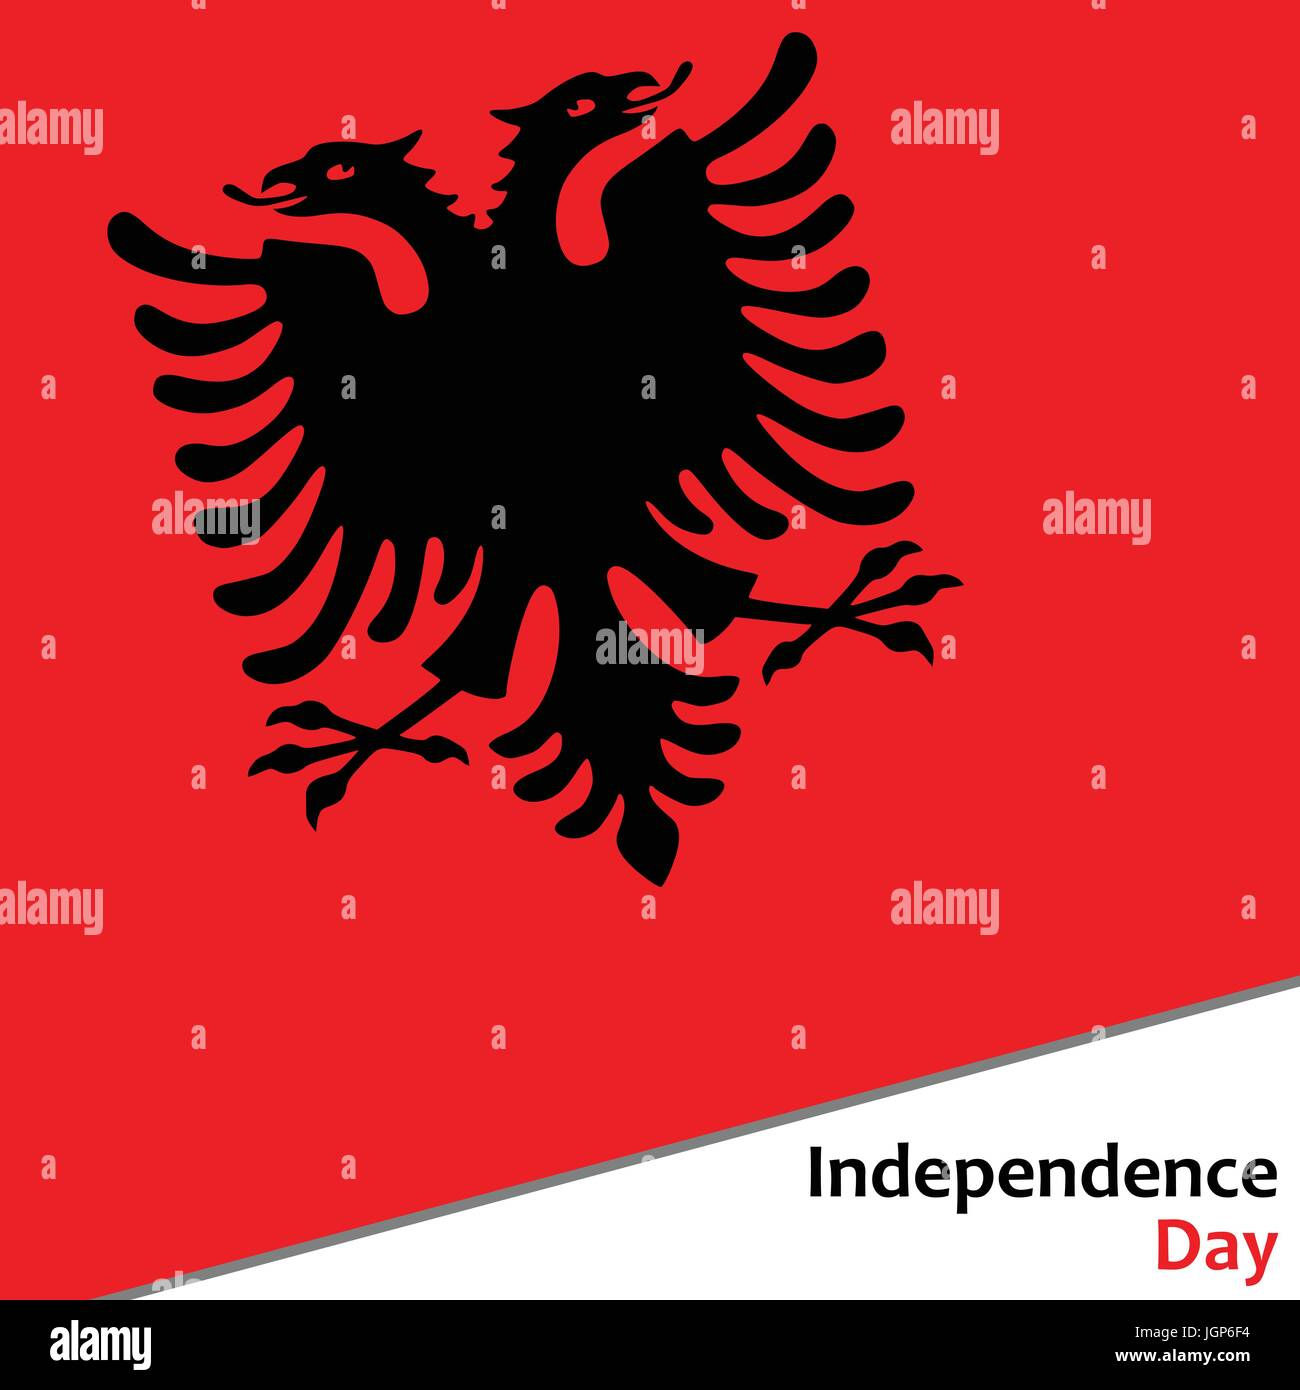 Albania independence day - Stock Vector